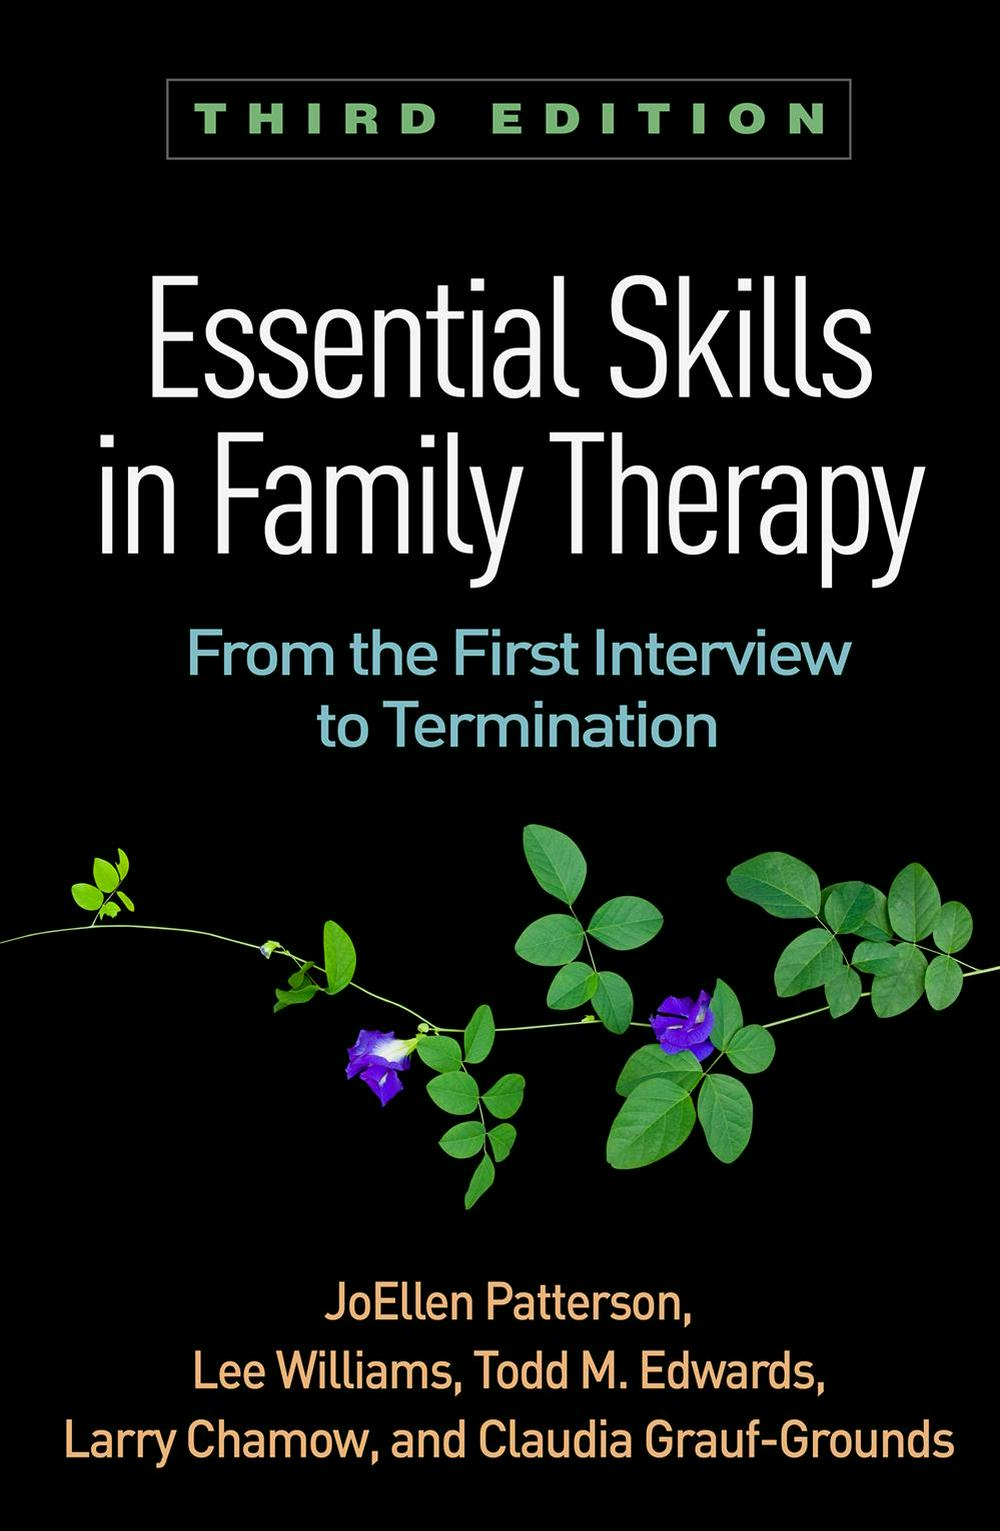 Essential Skills in Family Therapy, Third Edition: From the First Interview to Termination by JoEllen Patterson, ISBN: 9781462533435